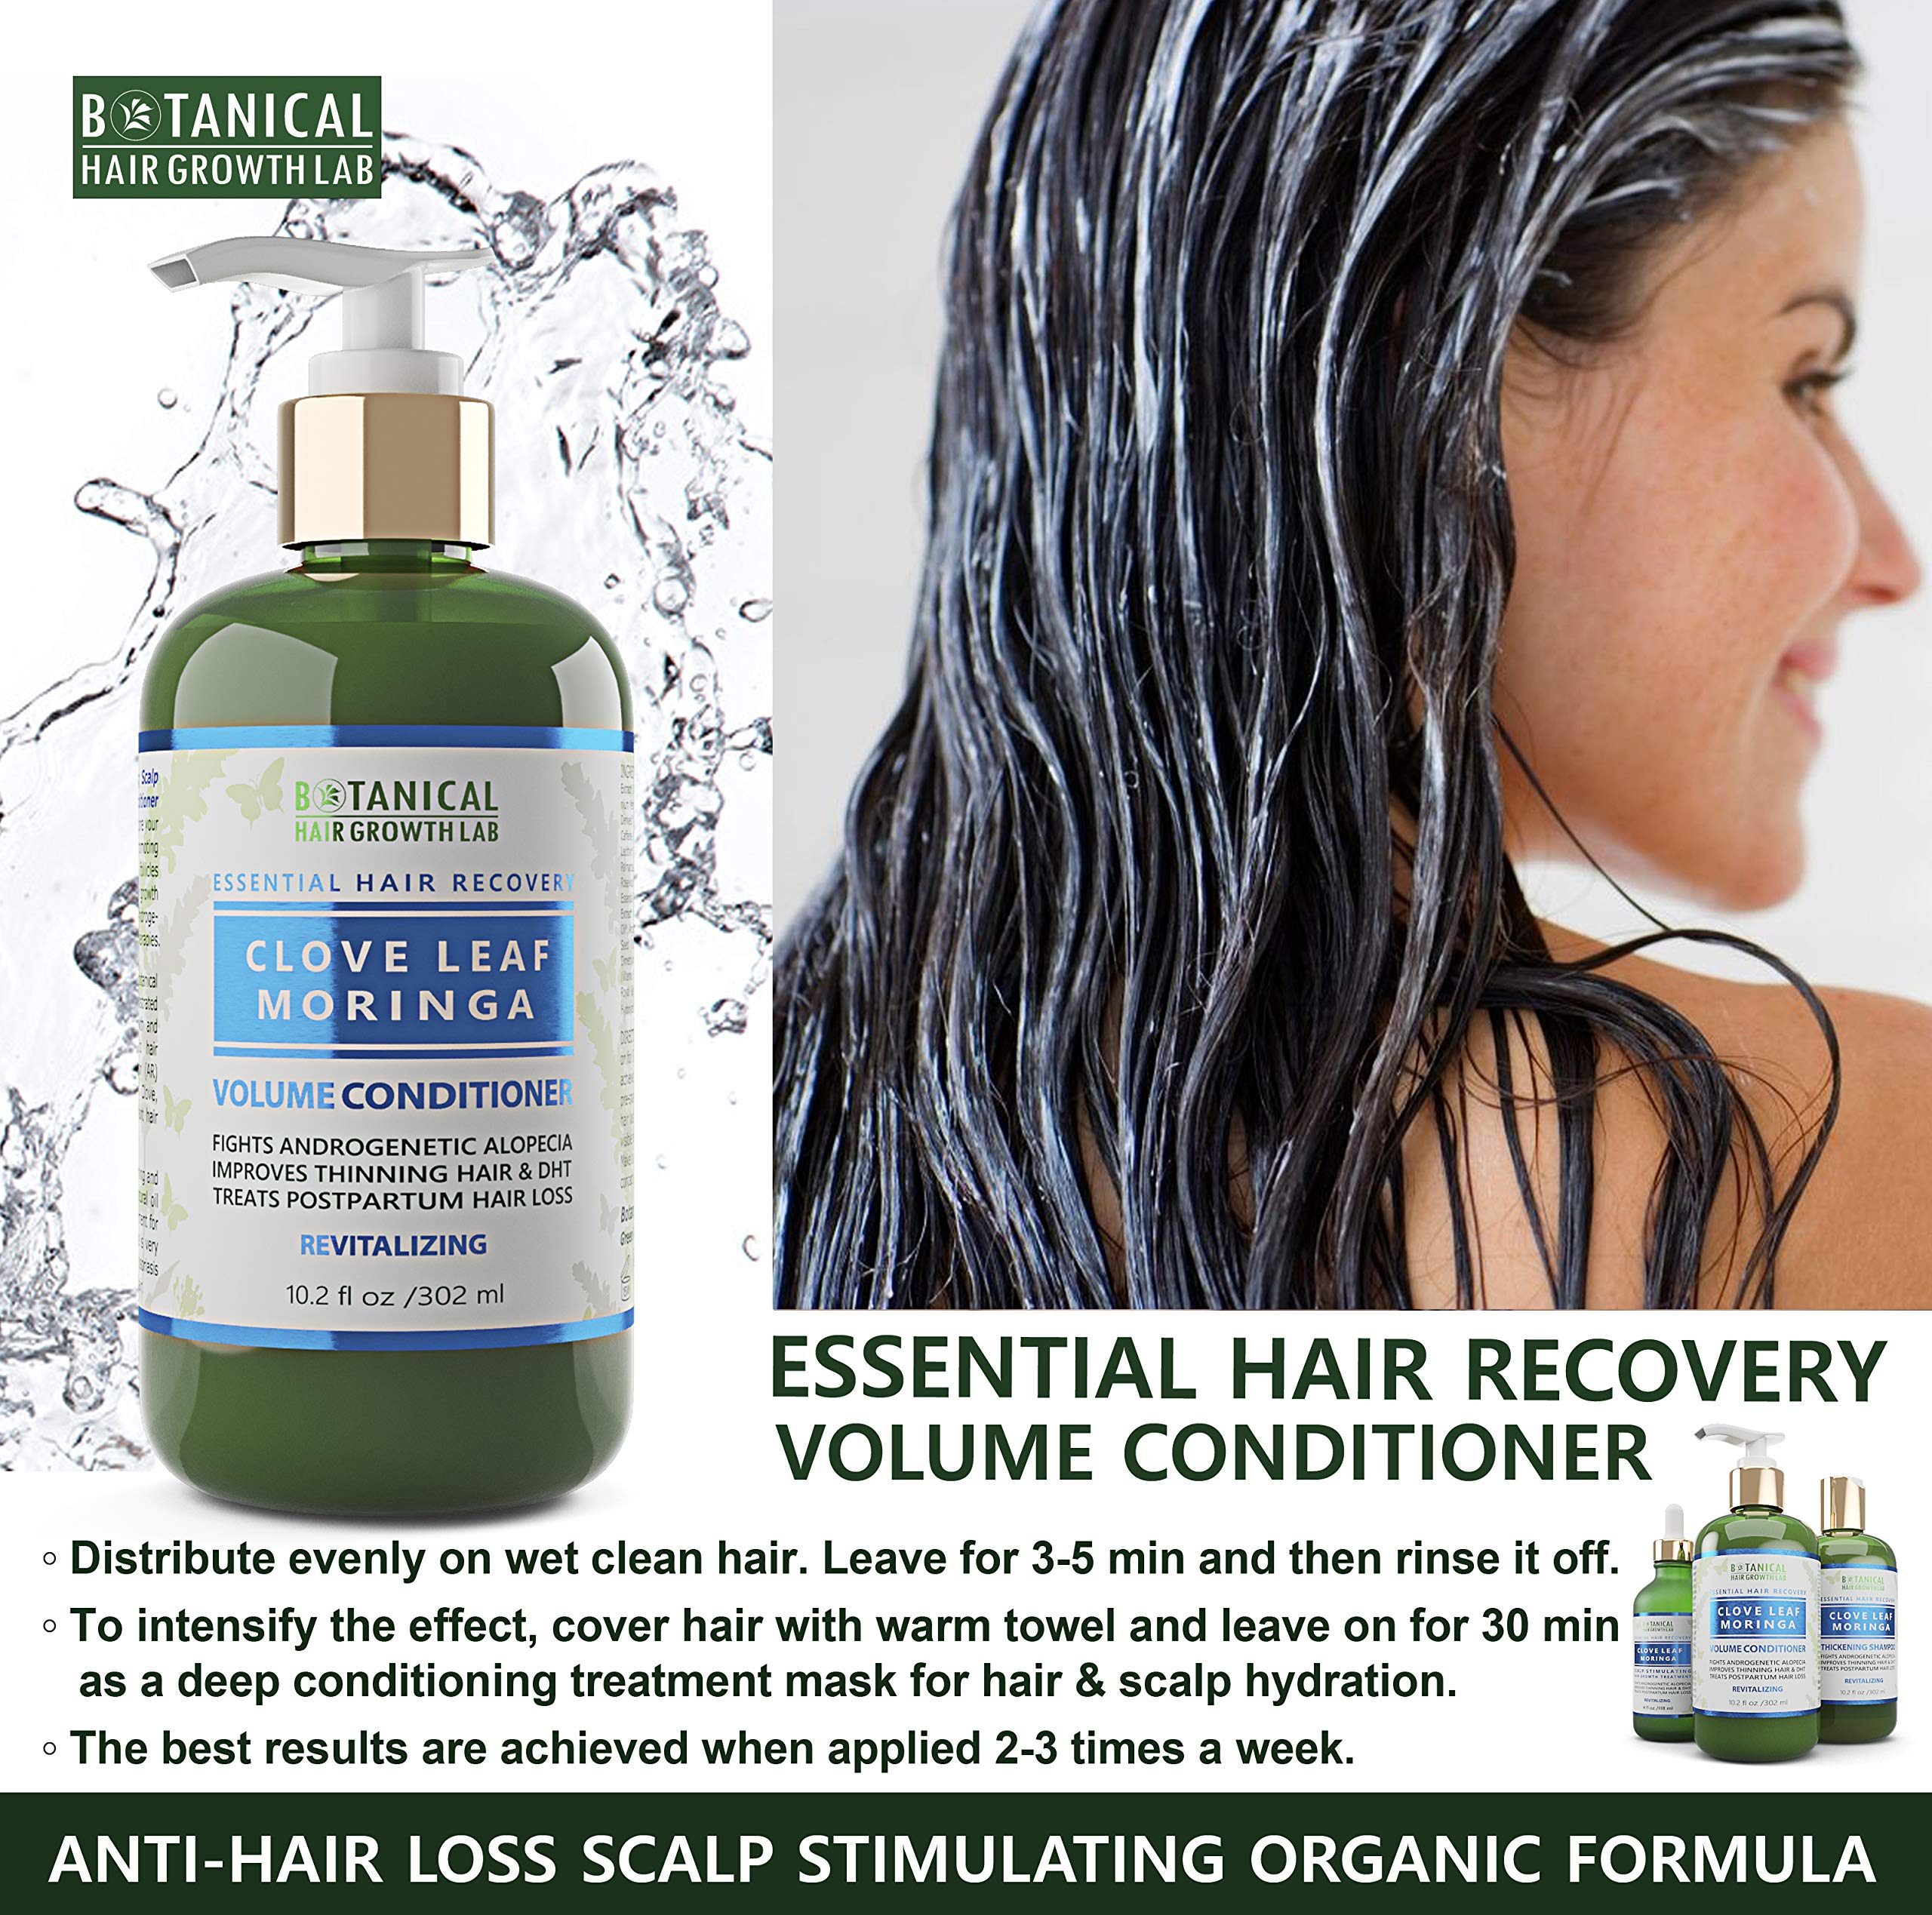 Botanical Hair Growth Lab Biotin Conditioner - Clove Leaf Moringa Formula - Anti Hair Loss Complex - DHT Blockers, Sulfate Free, Natural Ingredients for Men & Women by BOTANICAL HAIR GROWTH LAB (Image #3)